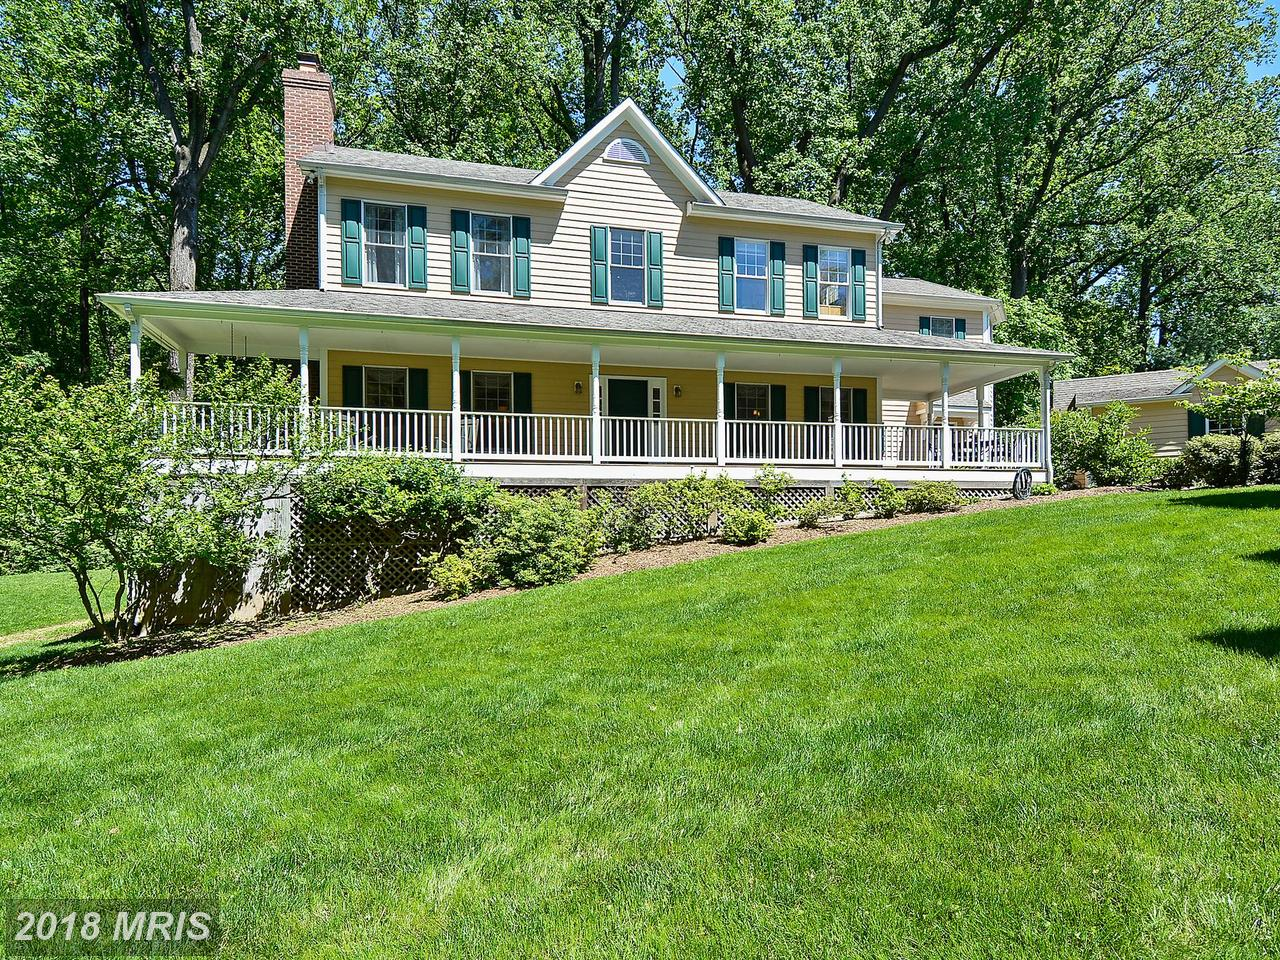 Villa per Vendita alle ore Colonial, Detached - CHEVY CHASE, MD 4109 JONES BRIDGE RD Chevy Chase, Maryland,20815 Stati Uniti